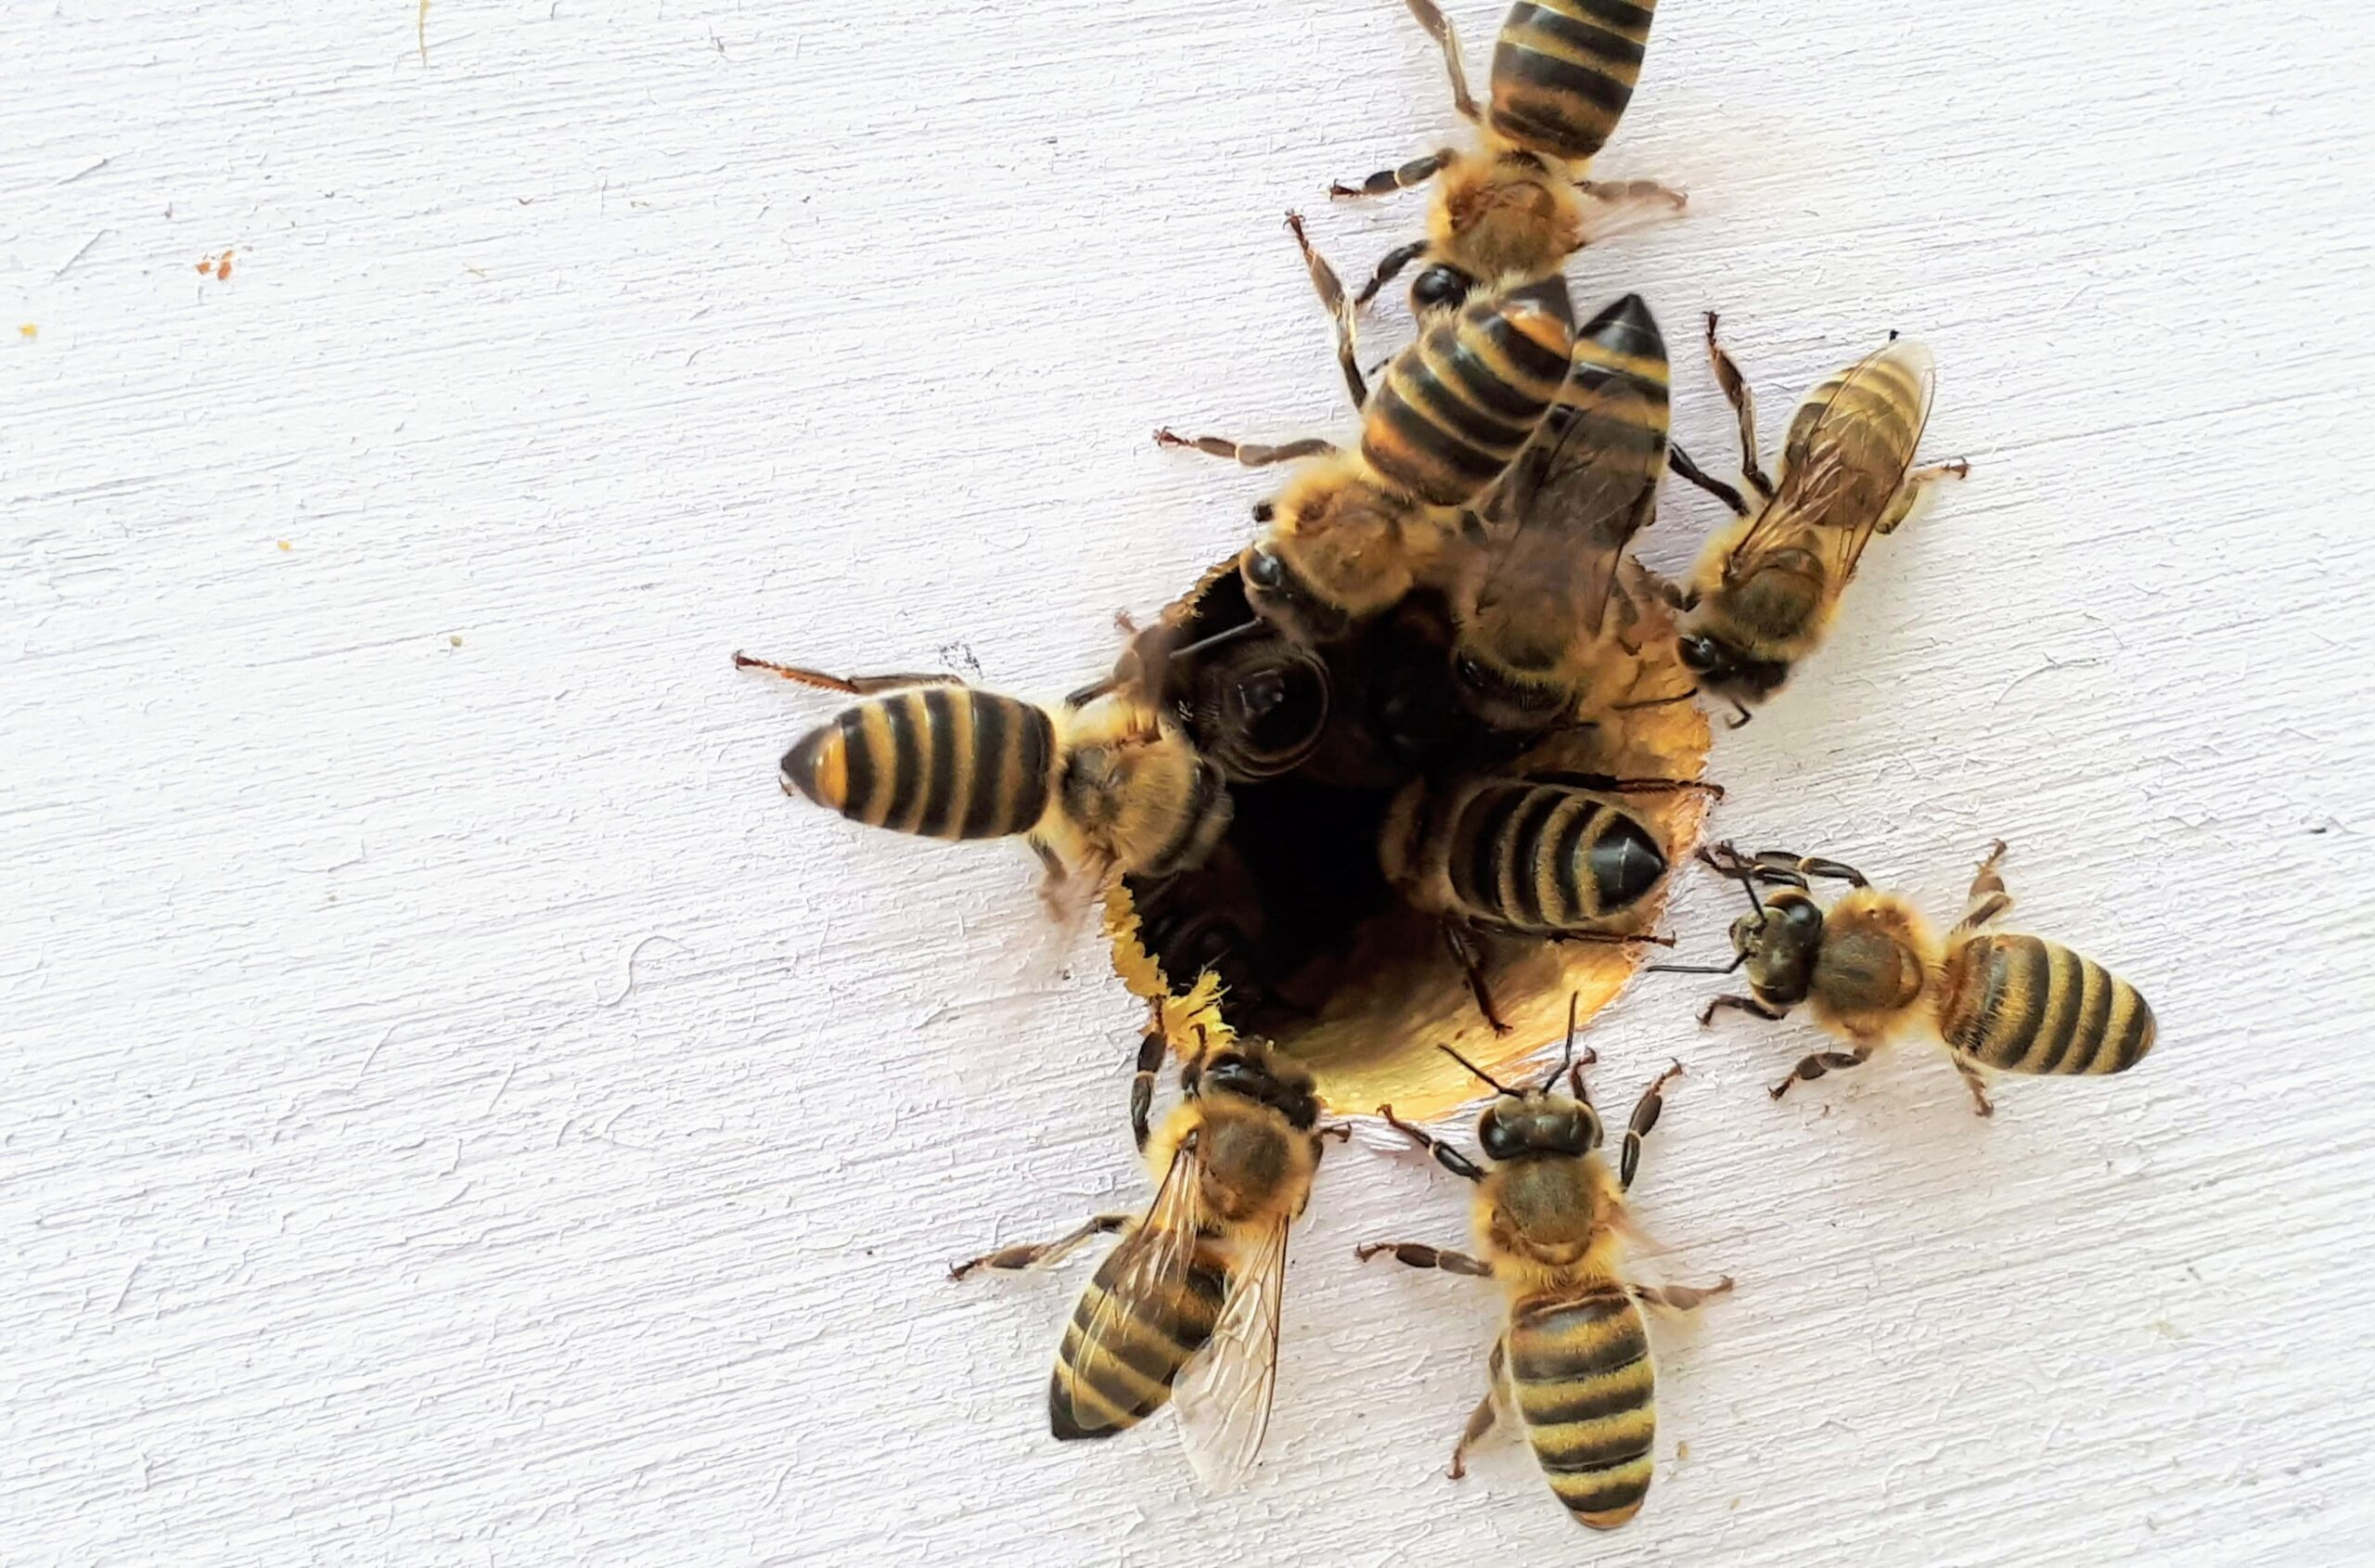 Bees crawling into a hole